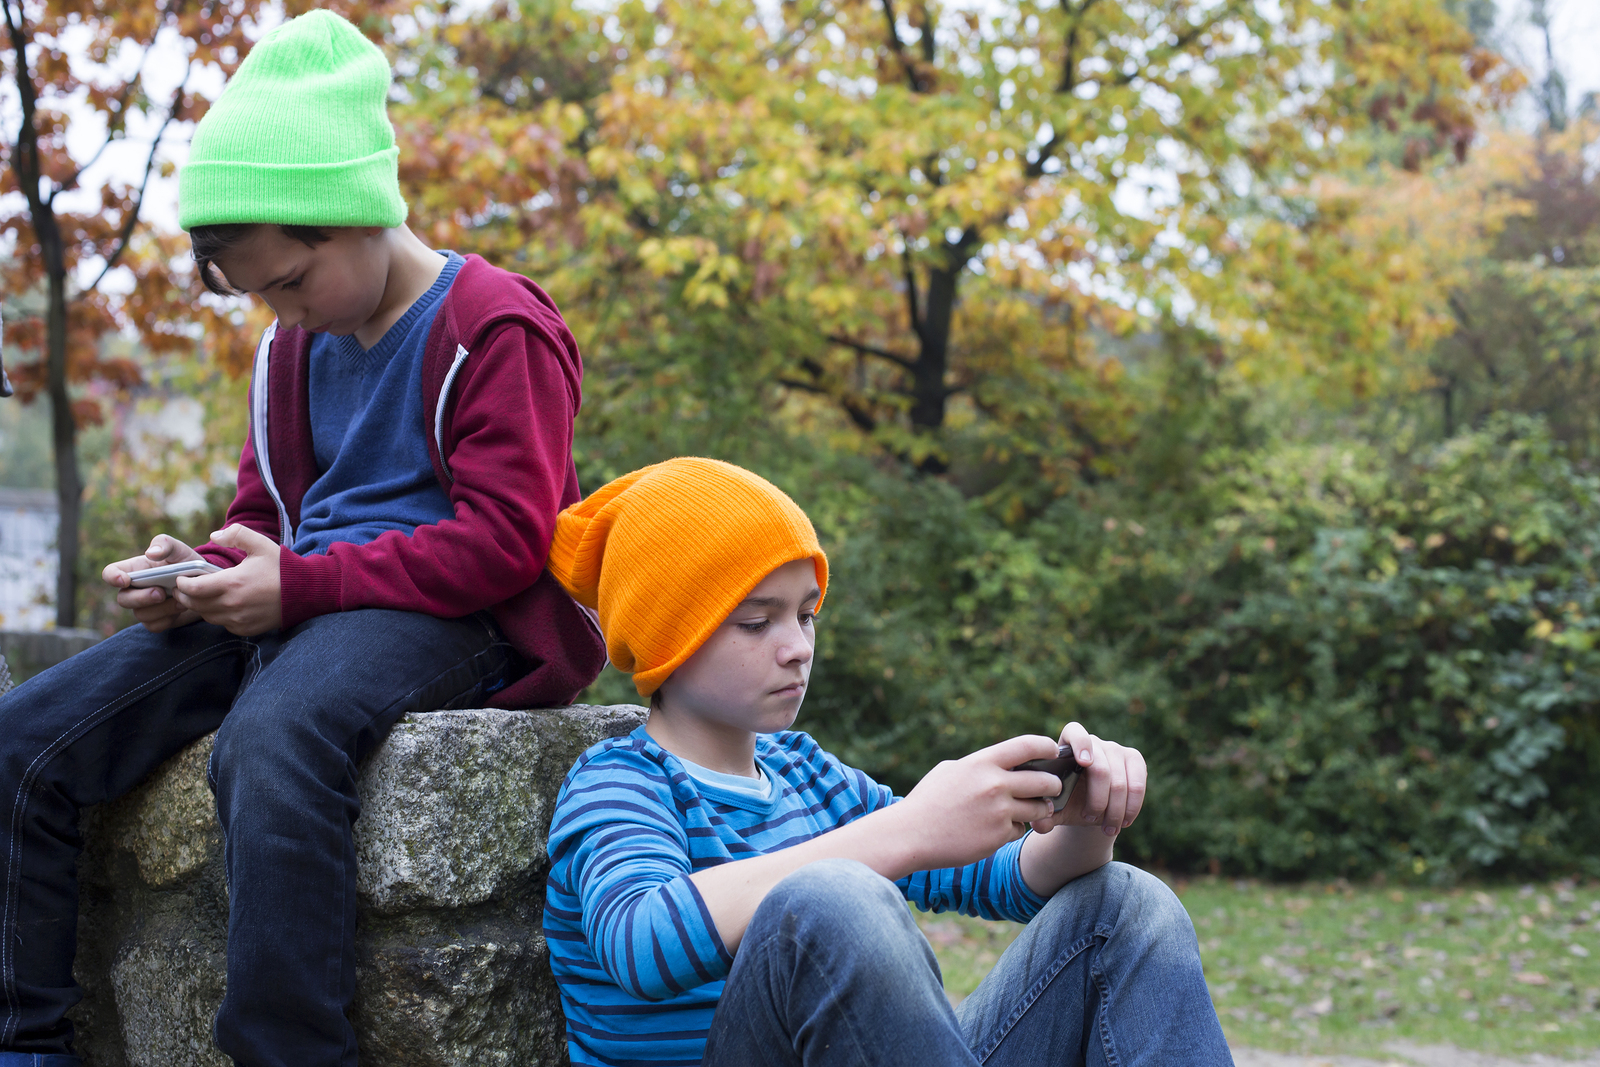 WHO Says Increased Screen Time Harms Children's Health